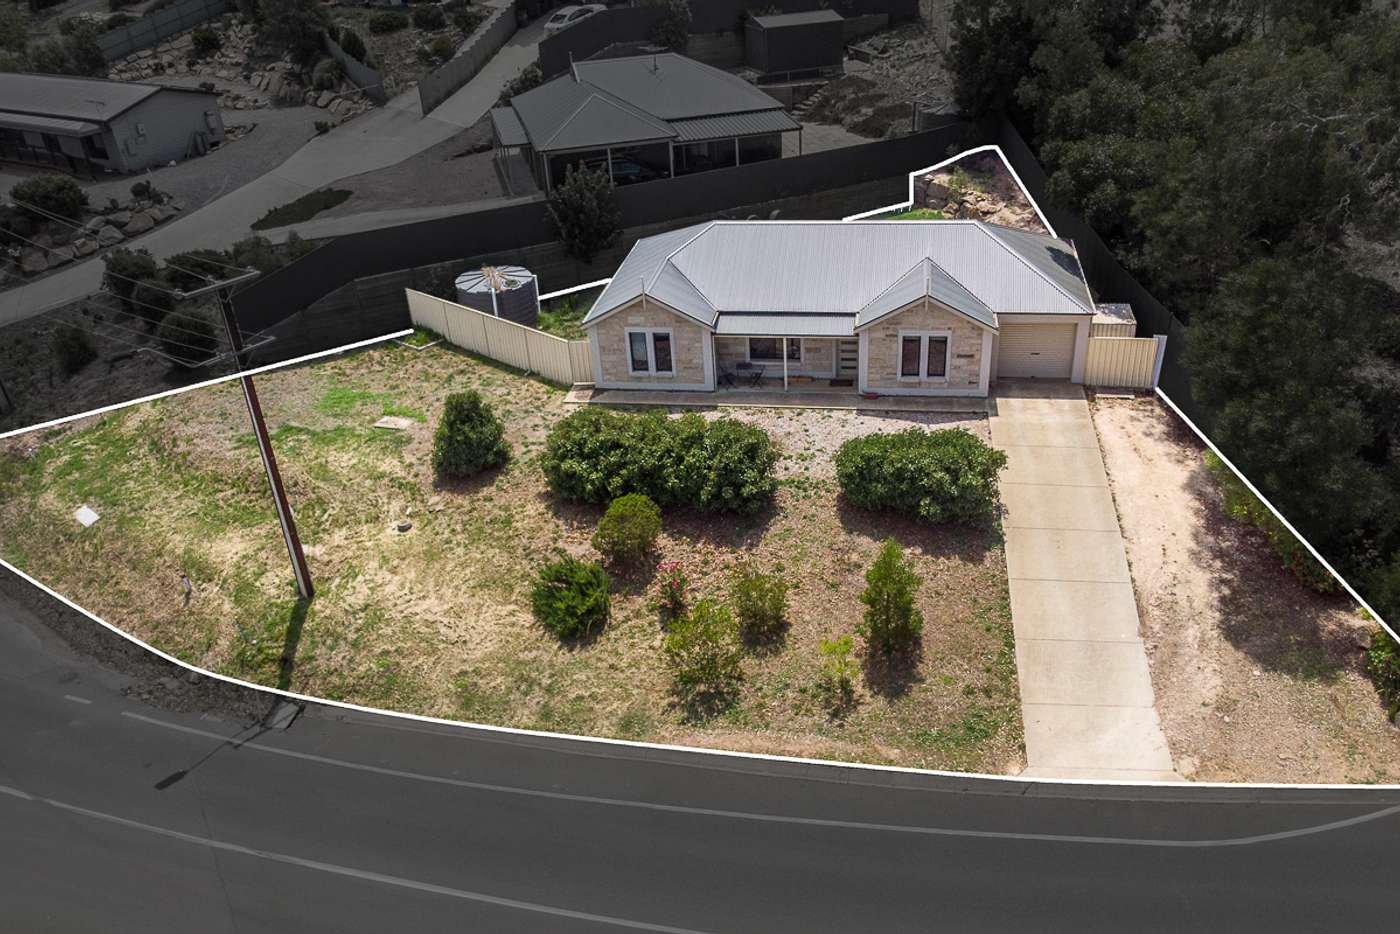 Main view of Homely house listing, 1 Sydney Road, Nairne SA 5252